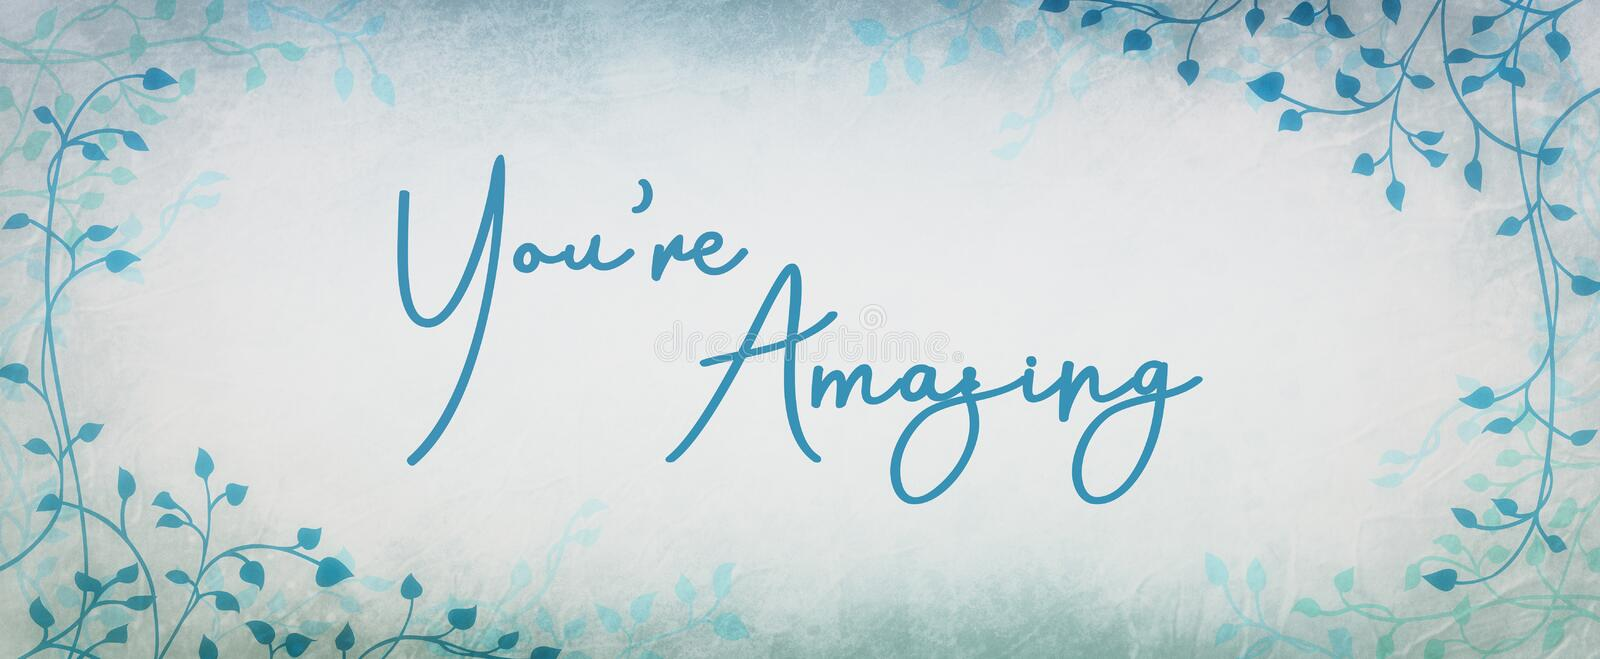 Compliment or encouragement typography  design saying you`re amazing in cursive handwriting with ivy or vine border design and blu royalty free illustration